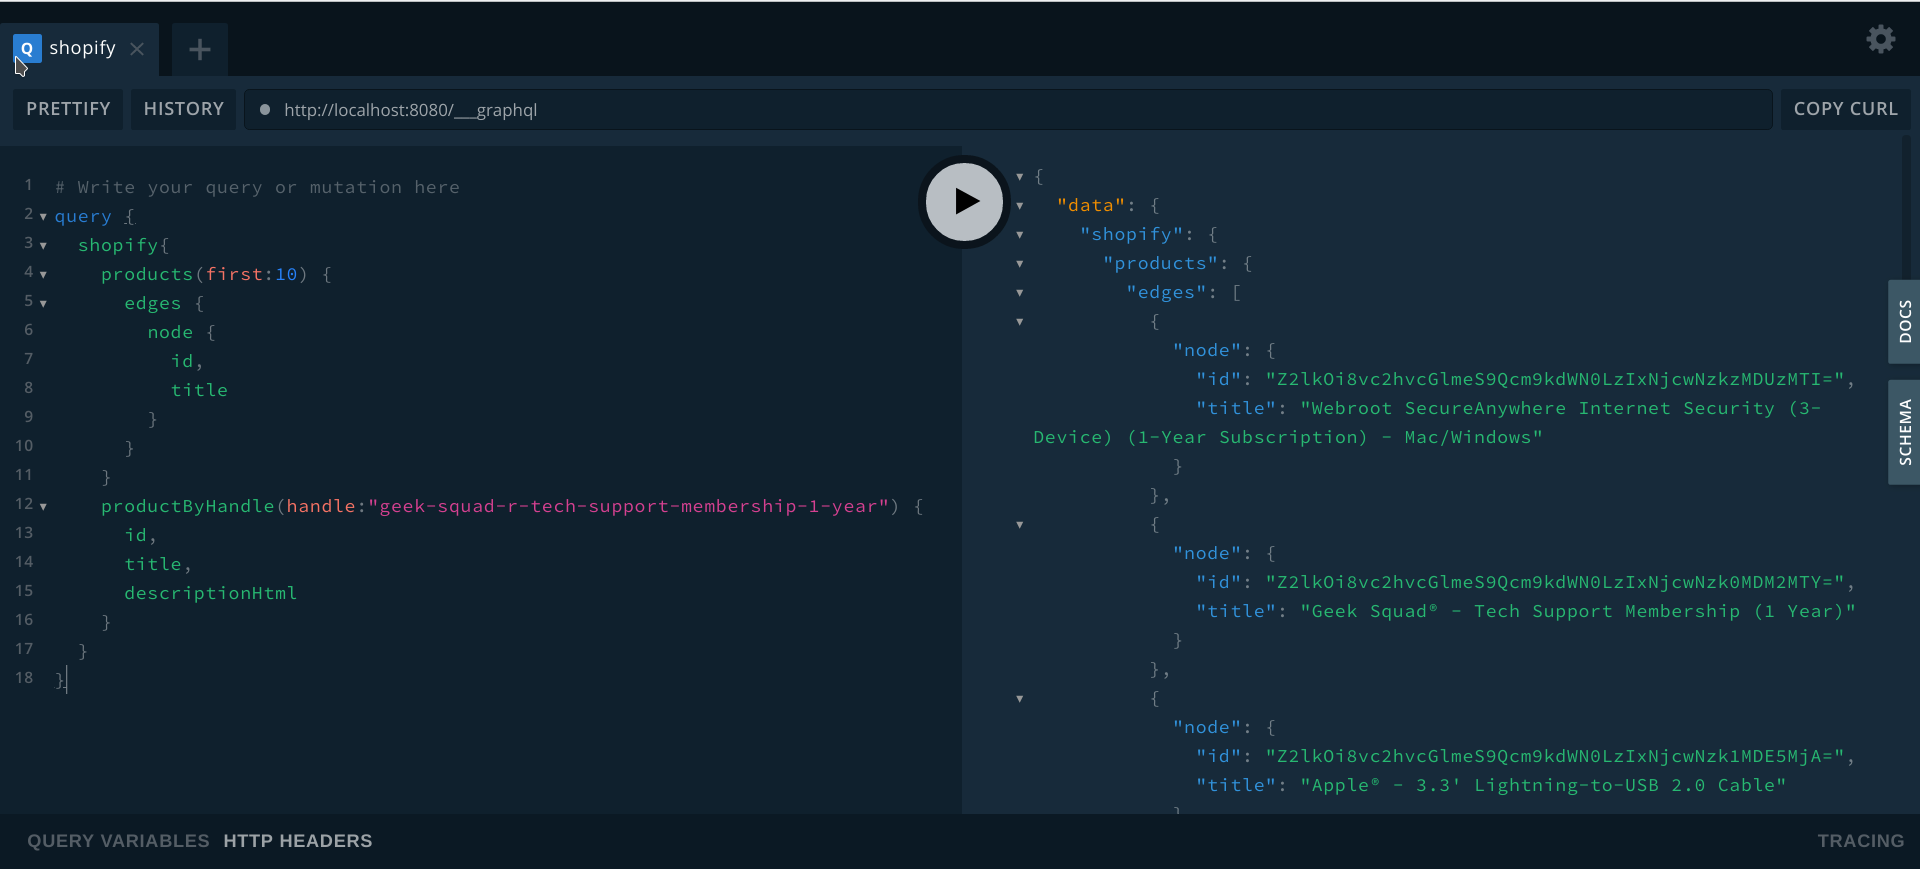 Mapping GraphQL Plugin to Types/Routing (Shopify) · Issue